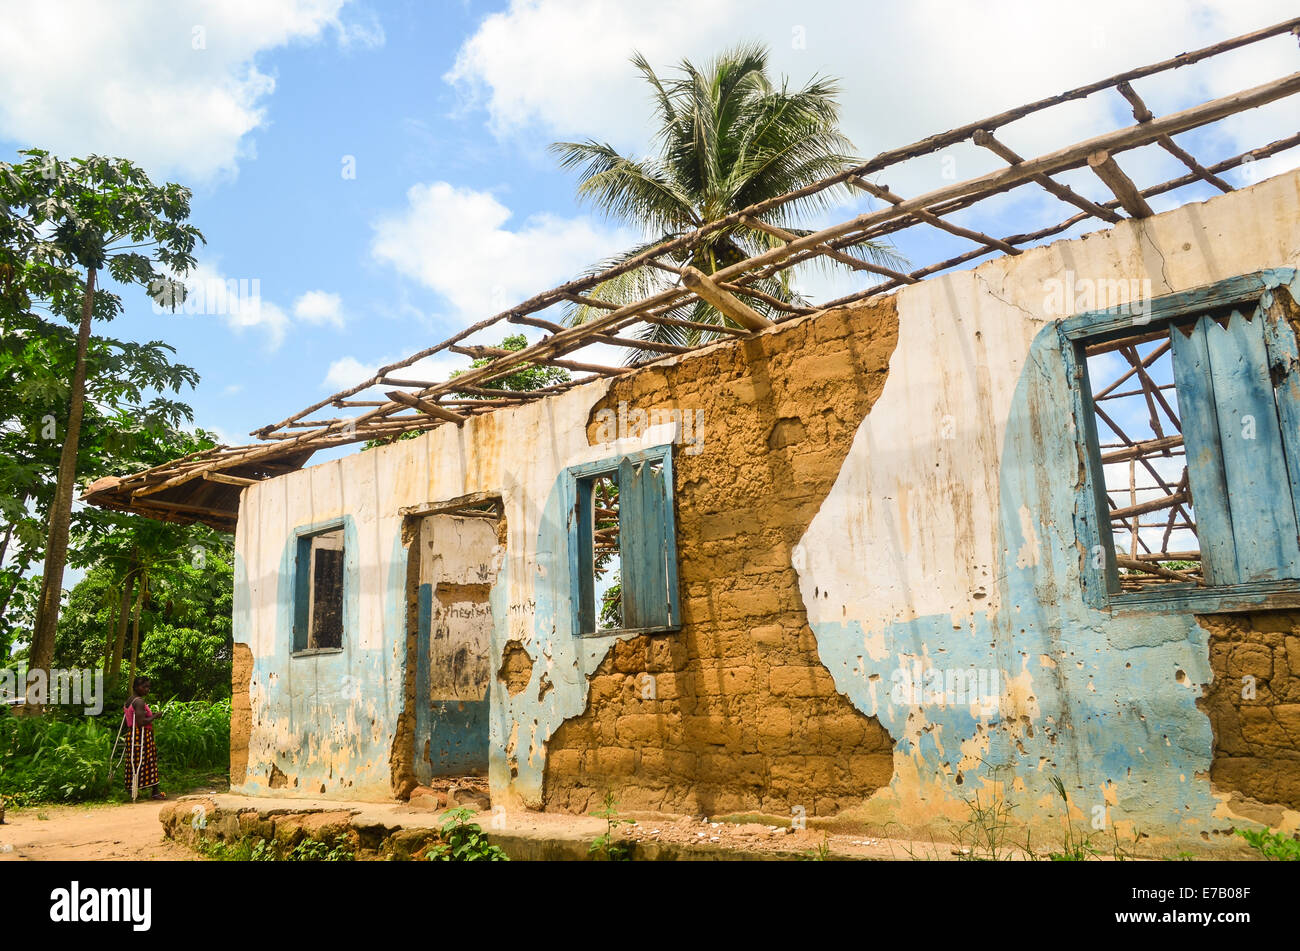 Woman standing by the ruins of a house in Sierra Leone, Africa - Stock Image